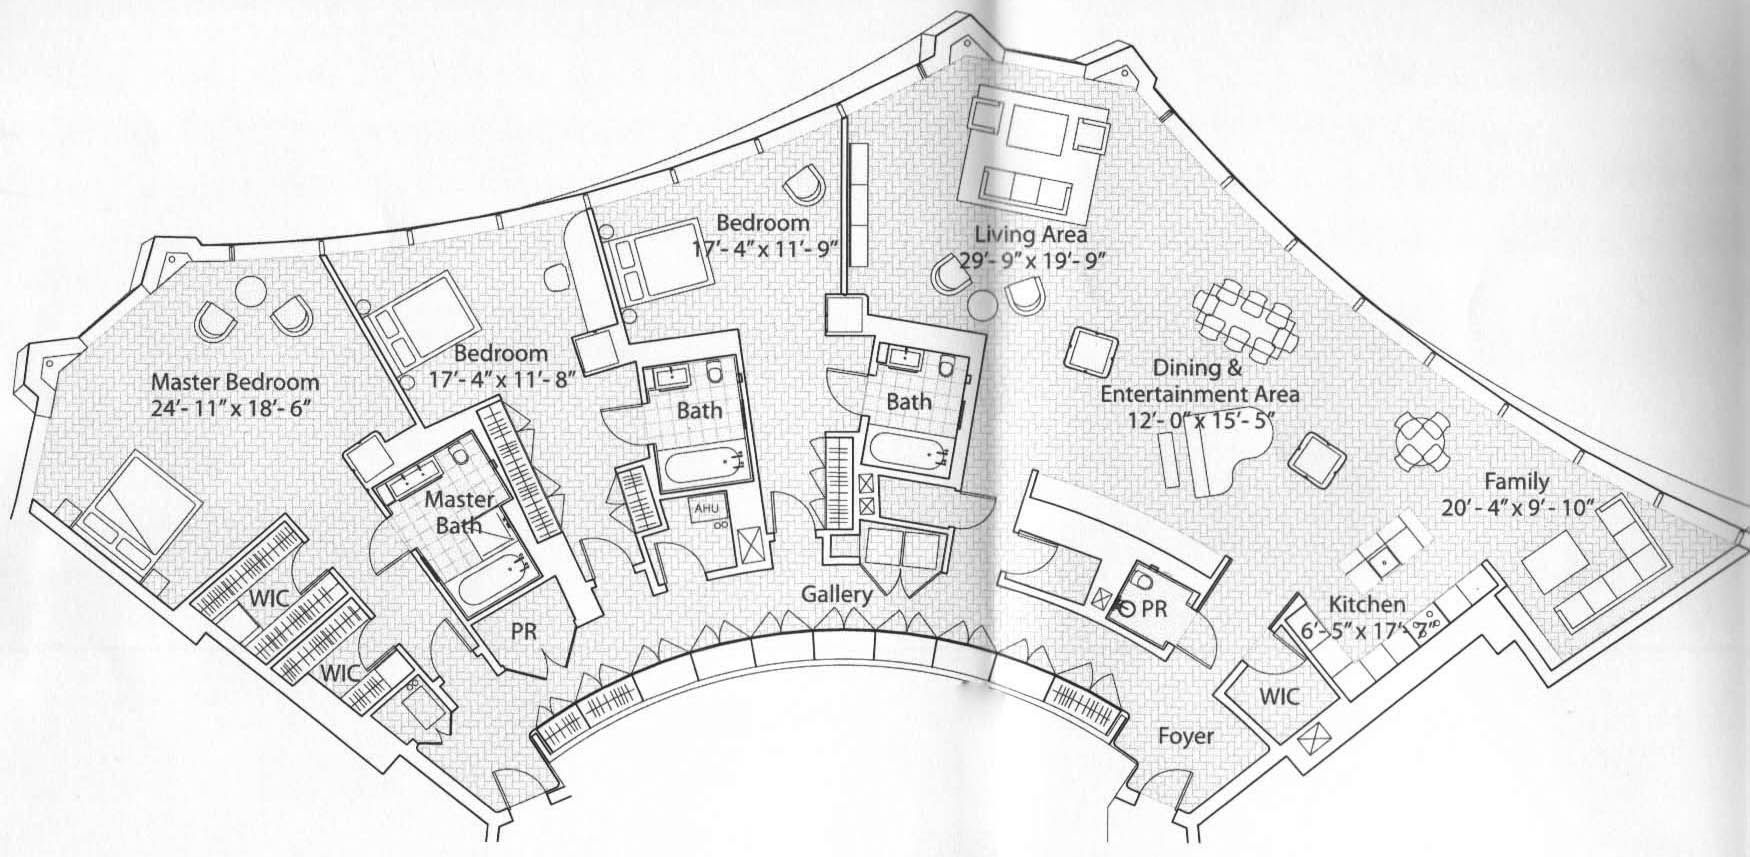 In Spired Condo Tower S Creative Shape Leads To Some Unusual Floor Plans Floor Plans How To Plan Spires